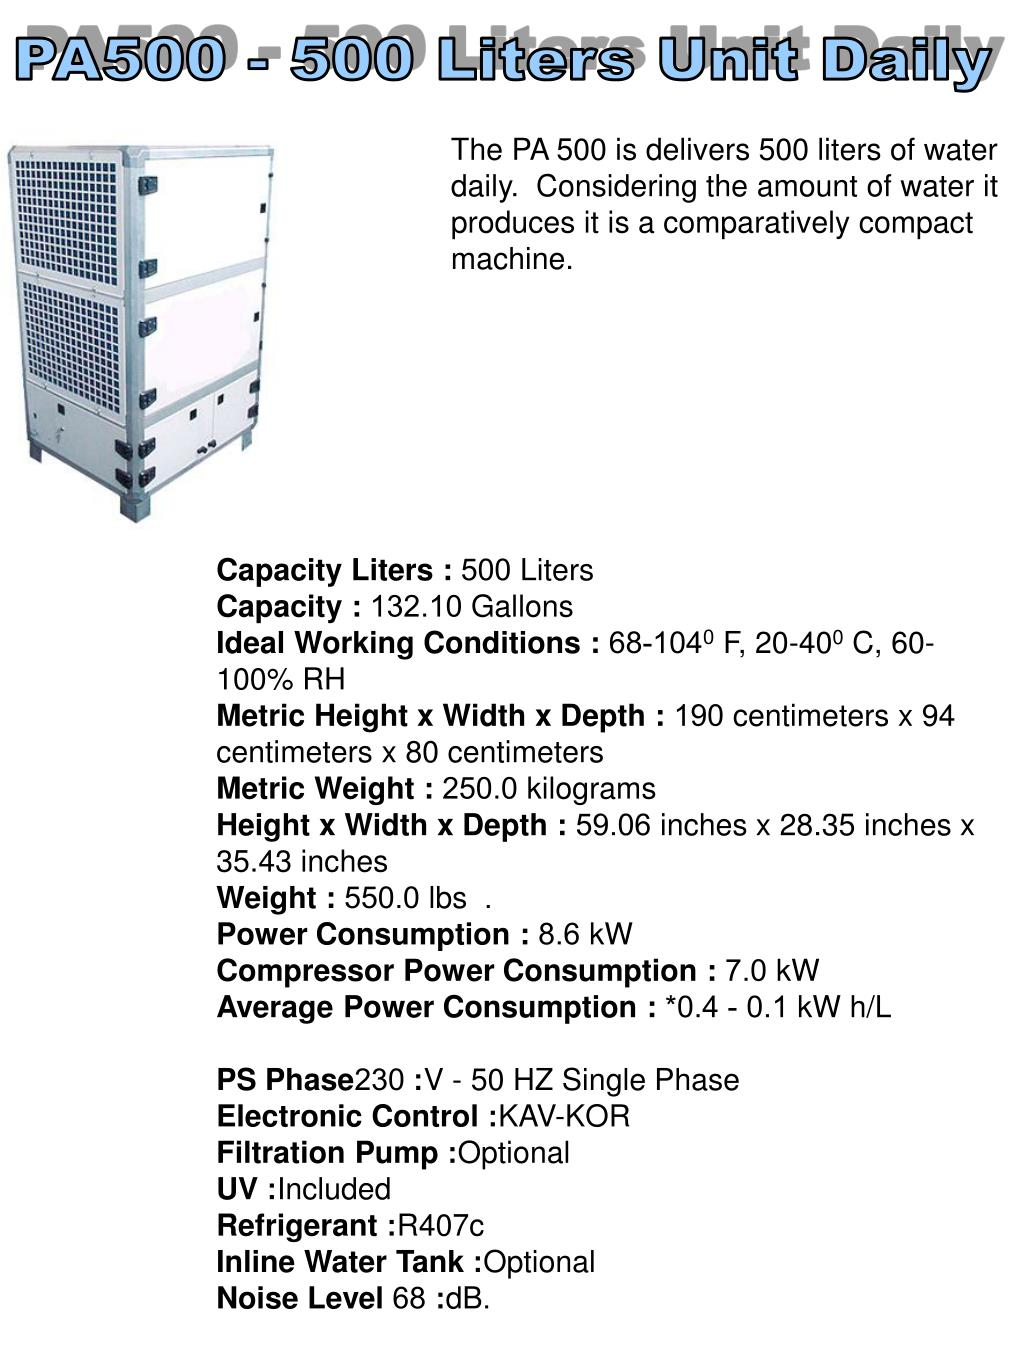 PA500 - 500 Liters Unit Daily